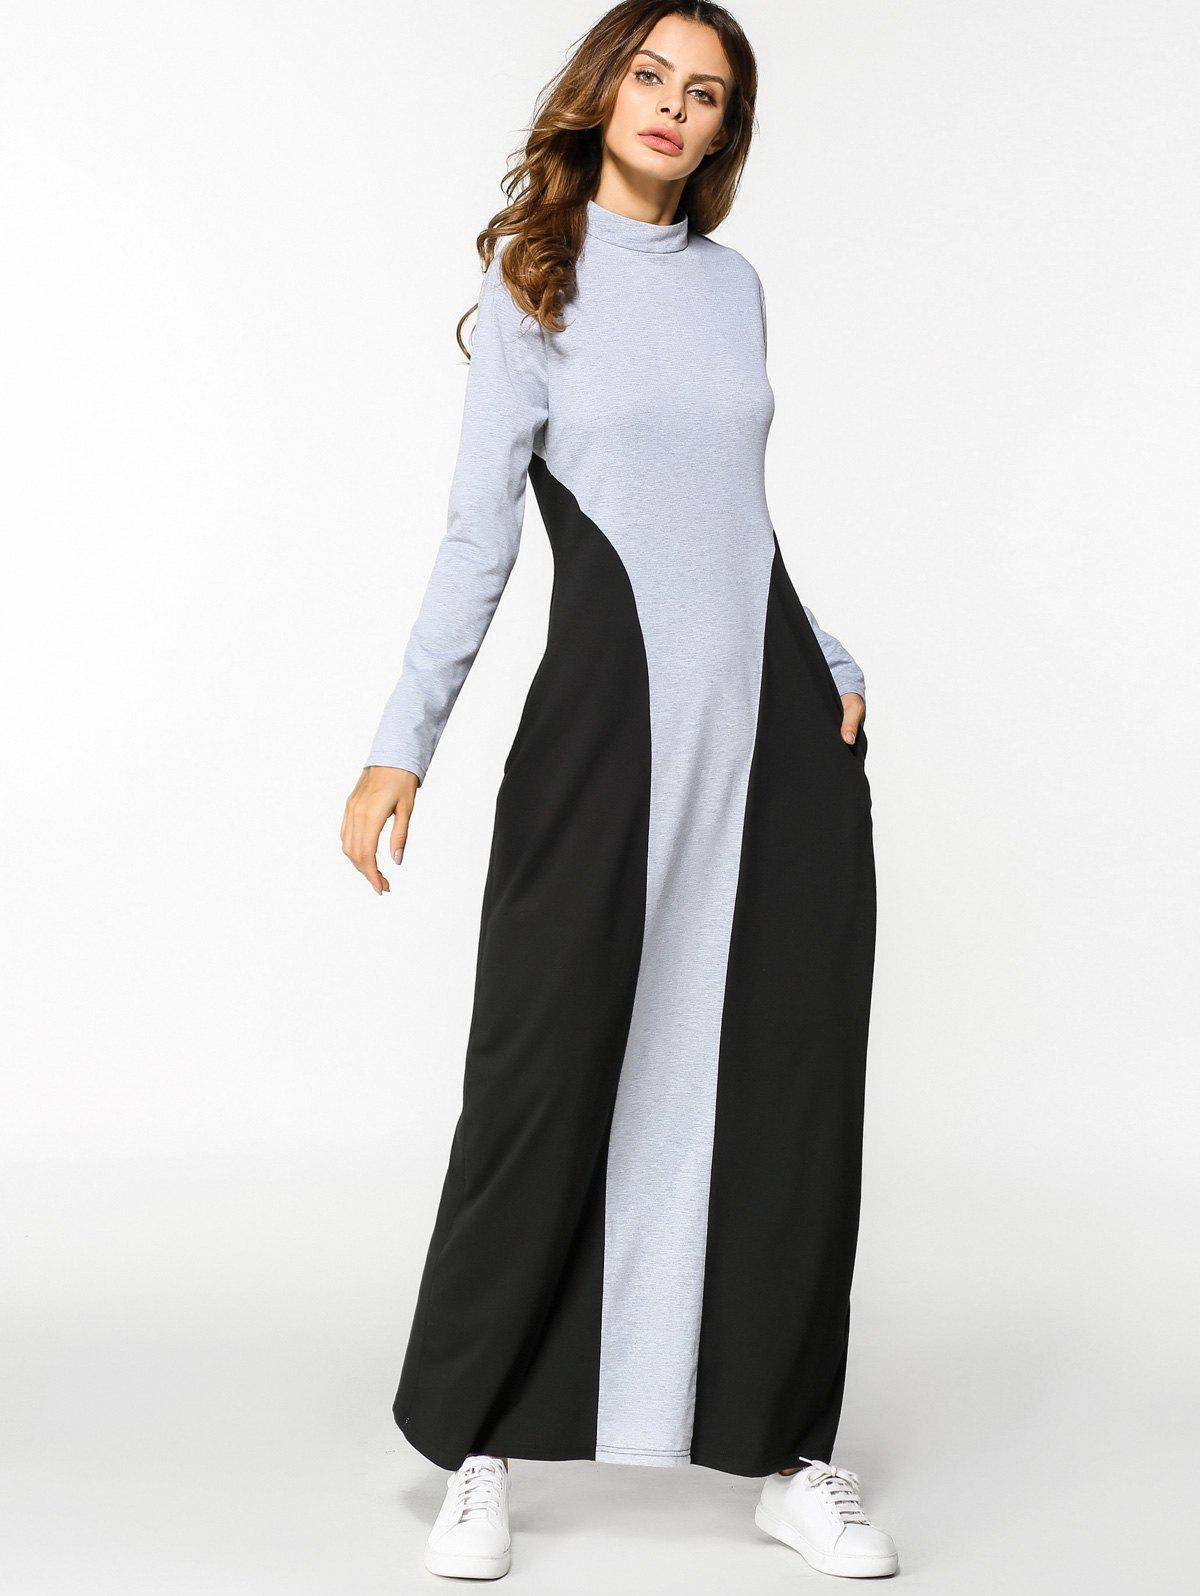 Shop Two Tone Long Sleeve A Line Maxi Dress